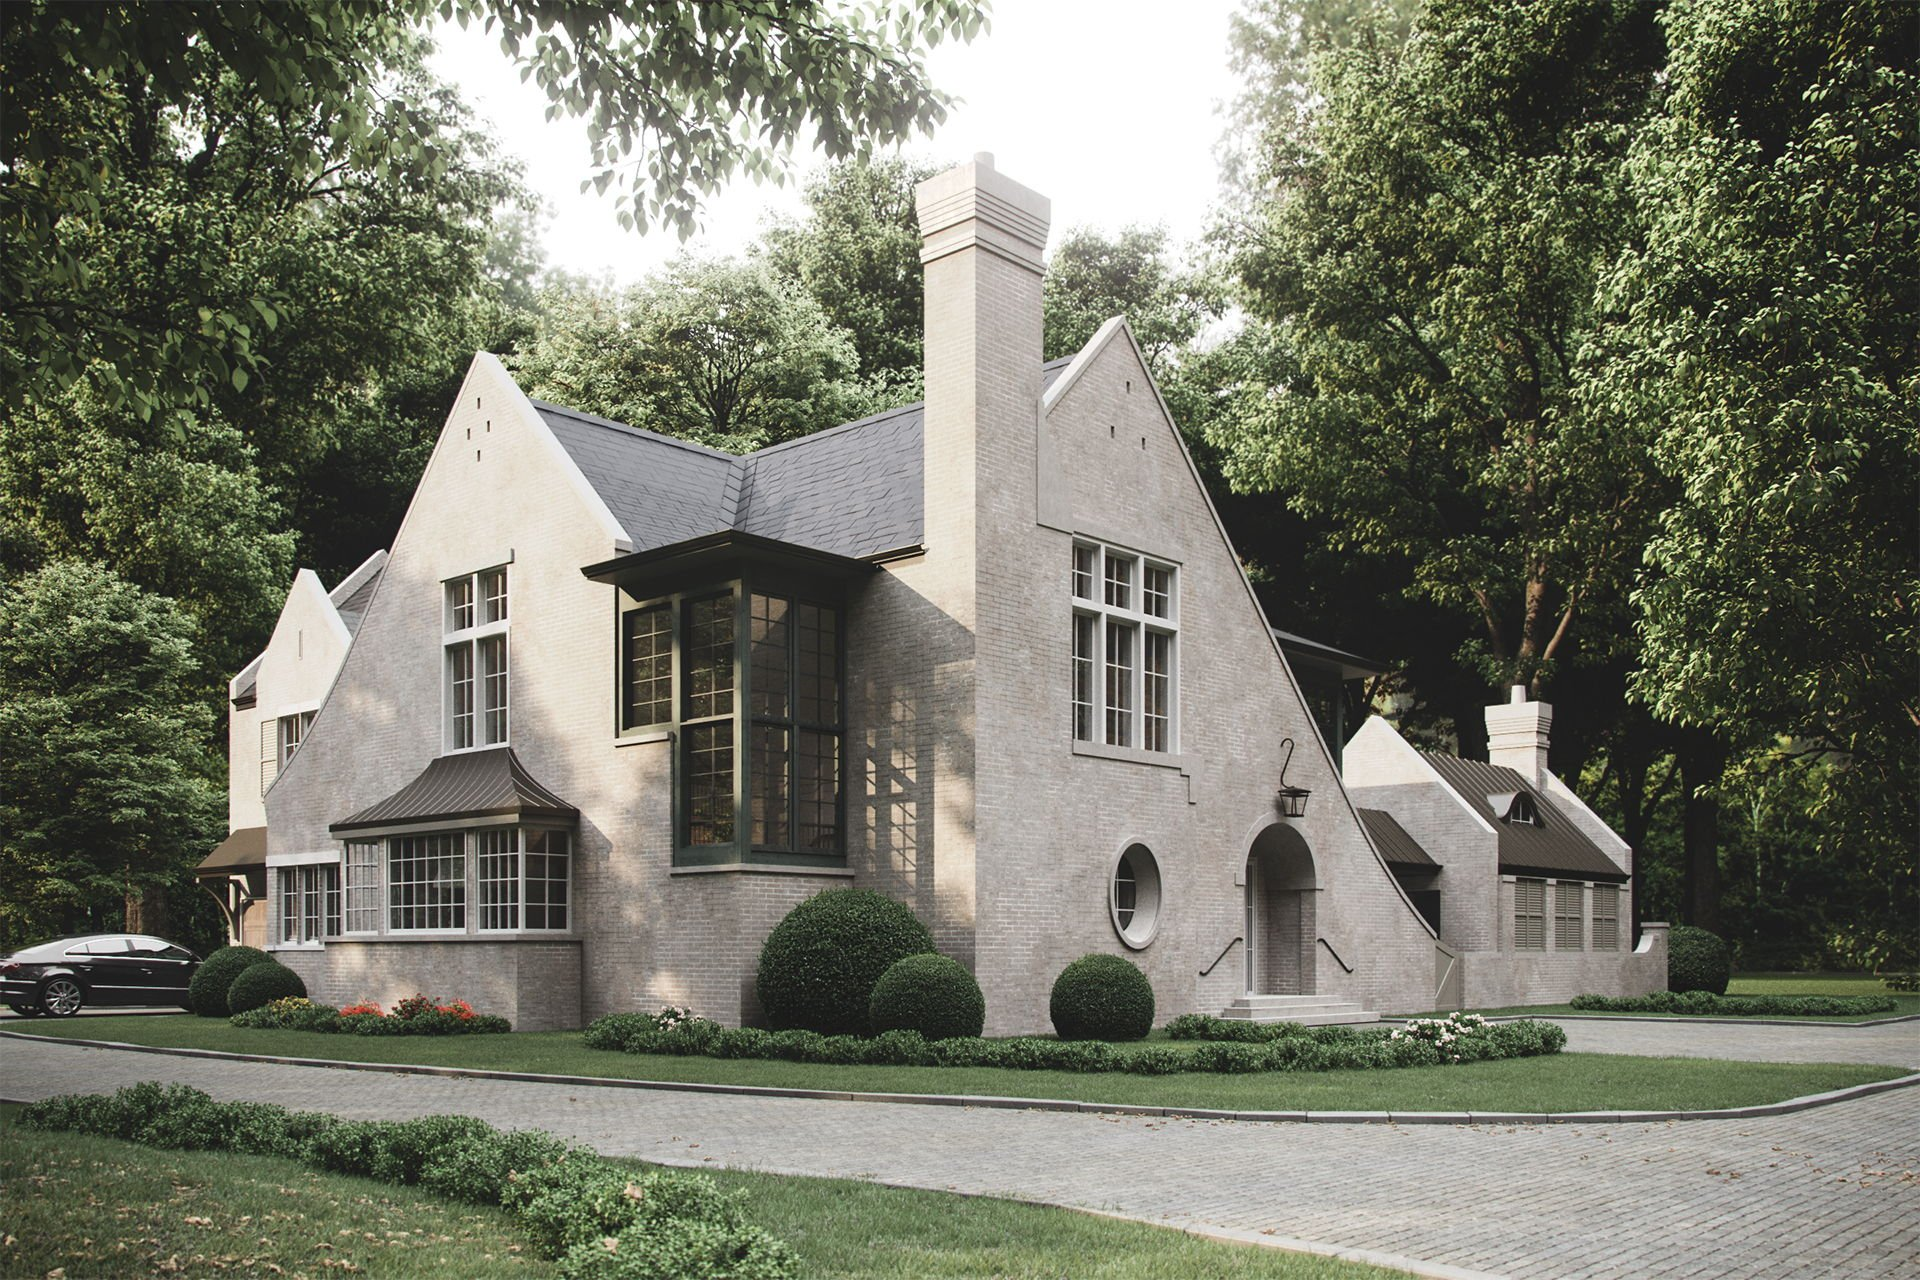 3D Exterior Visualization of a Classic-Style Rural Cottage